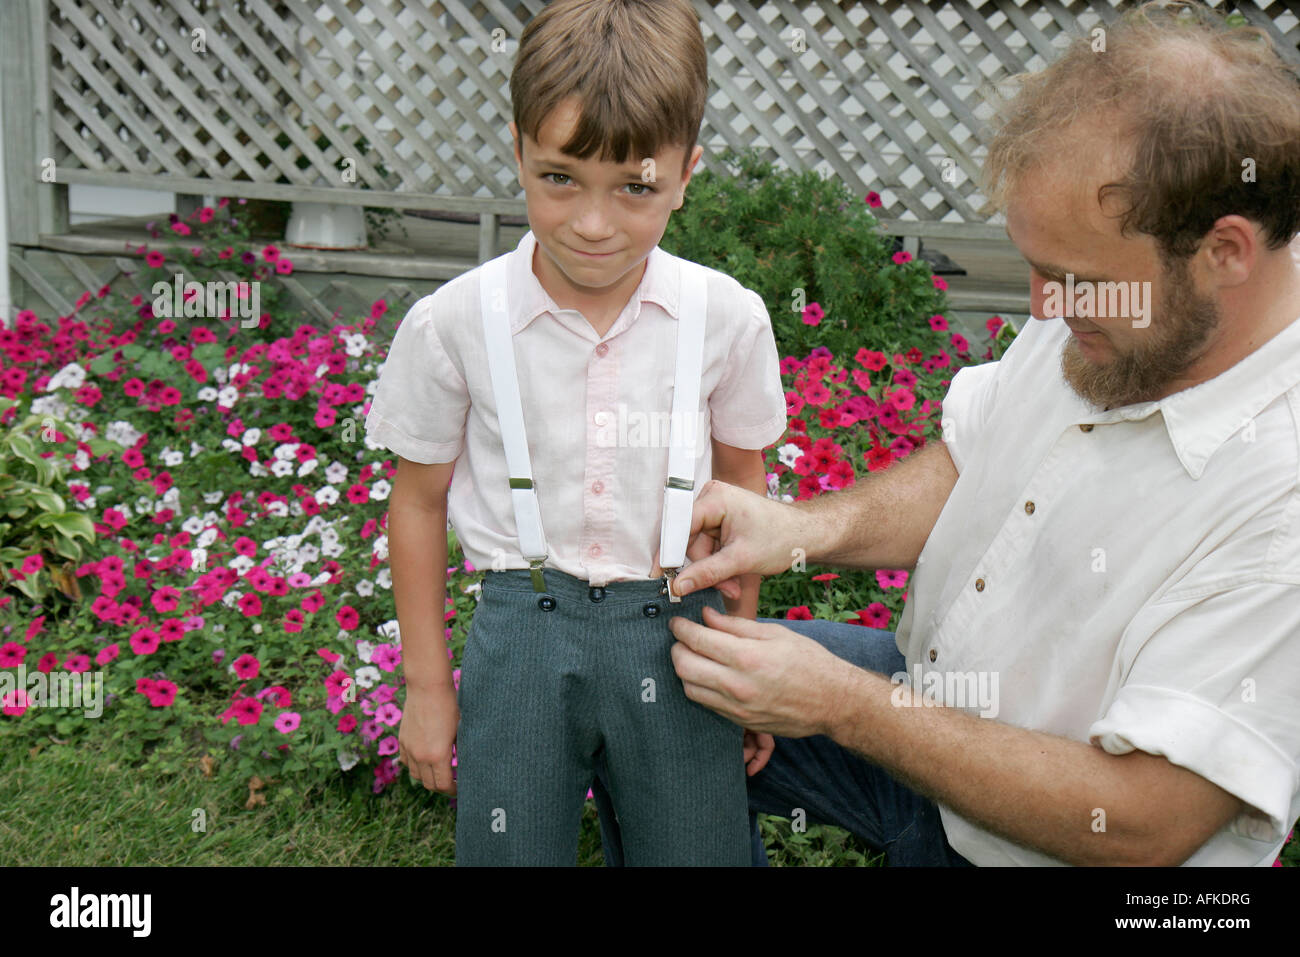 Indiana Shipshewana Amish Farm Tour boy suspenders father